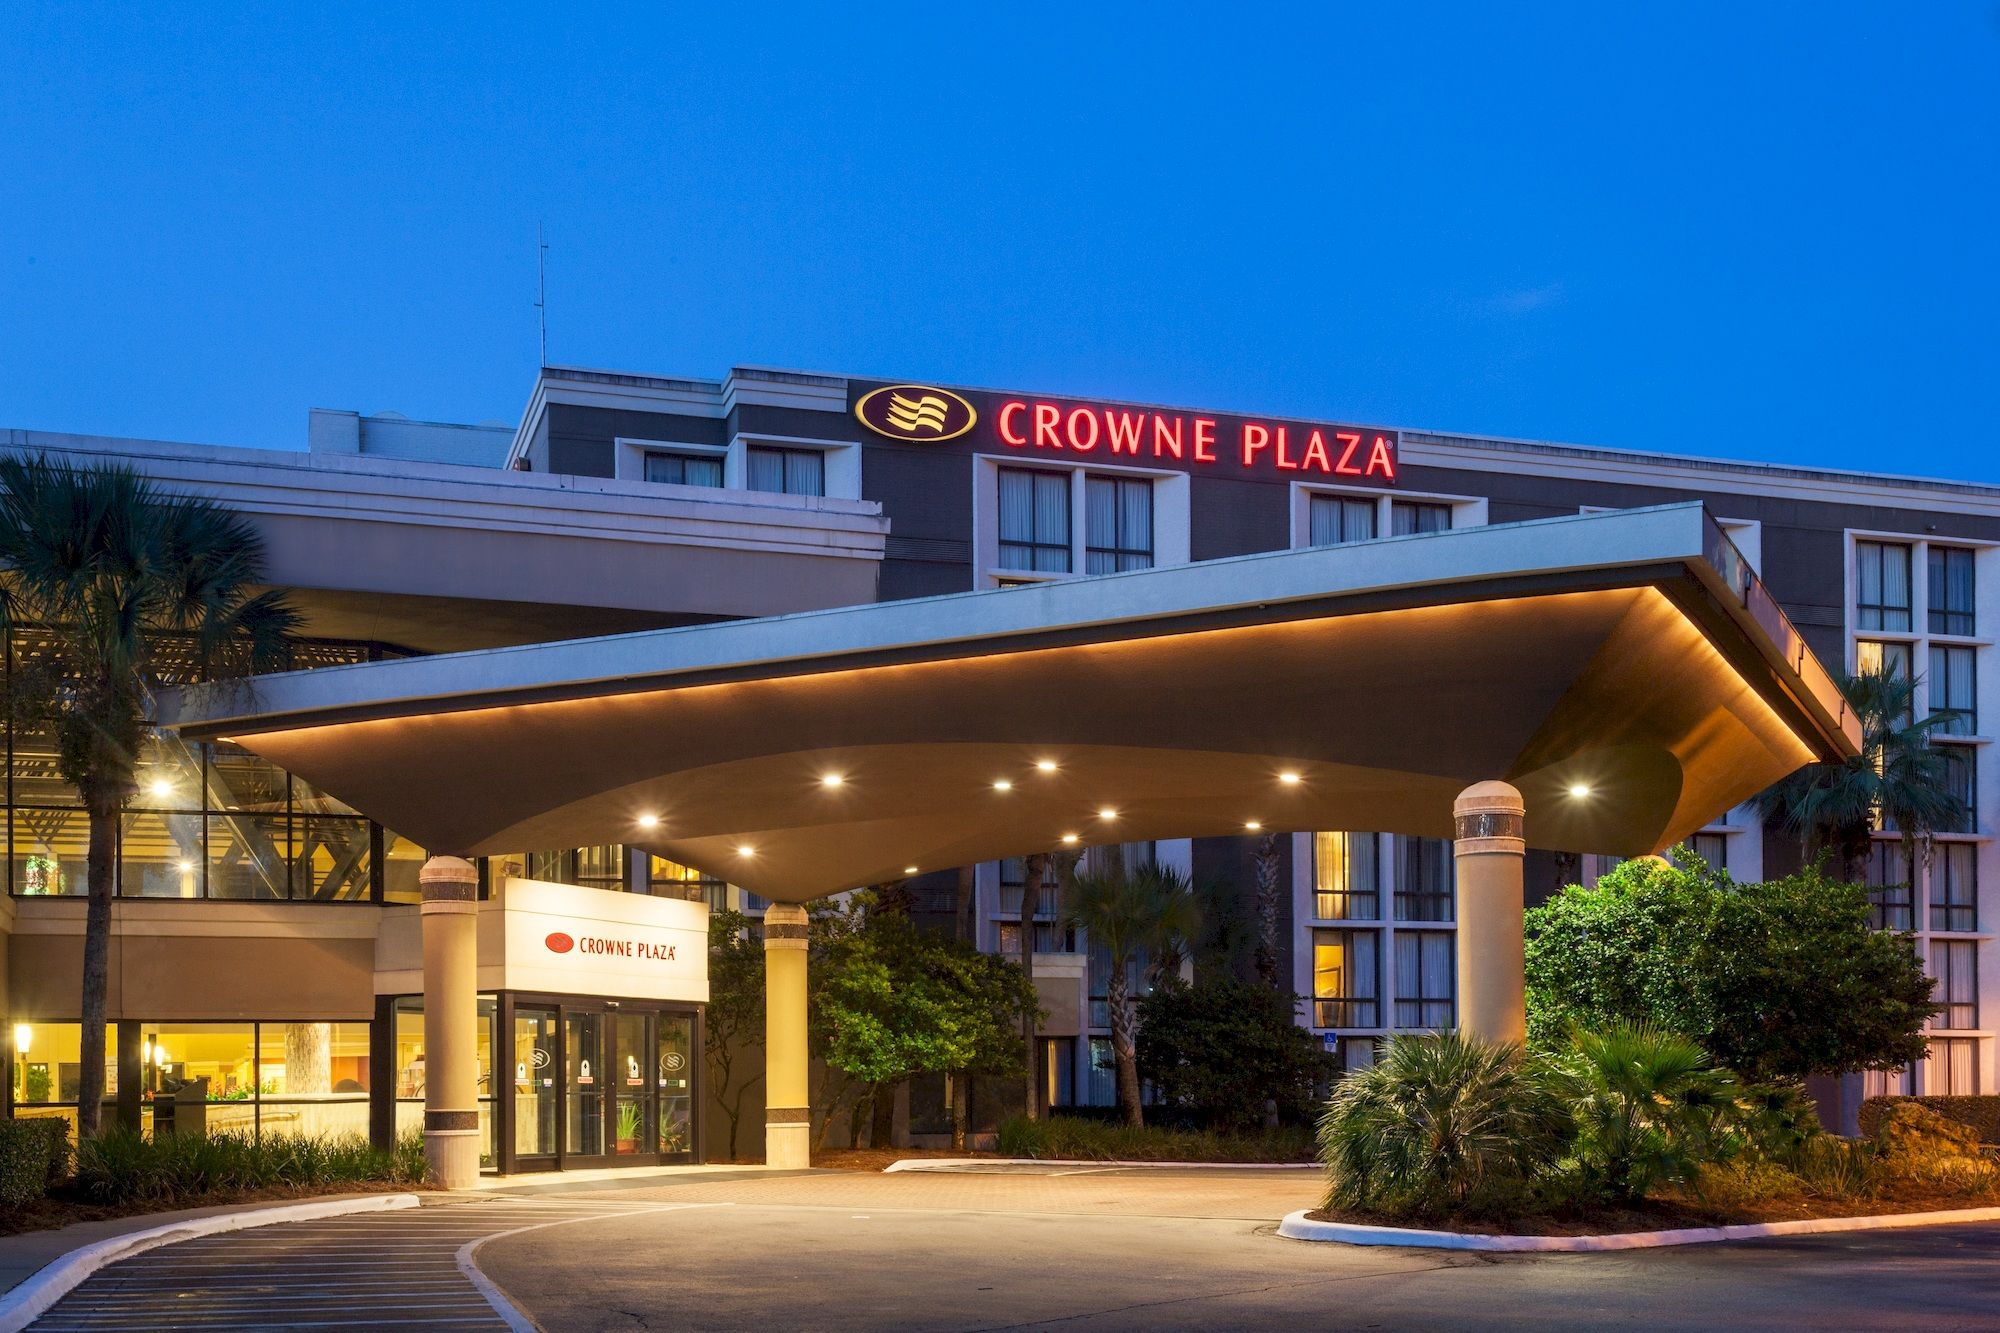 Crowne Plaza Hotels & Resorts, is ready for its guest 24/7, with connectivity that works, food that delicious and hygienic, meetings and fitness that works. Every hotel of Crowne Plaza is designed to help today's business people, work, leisure and restore.